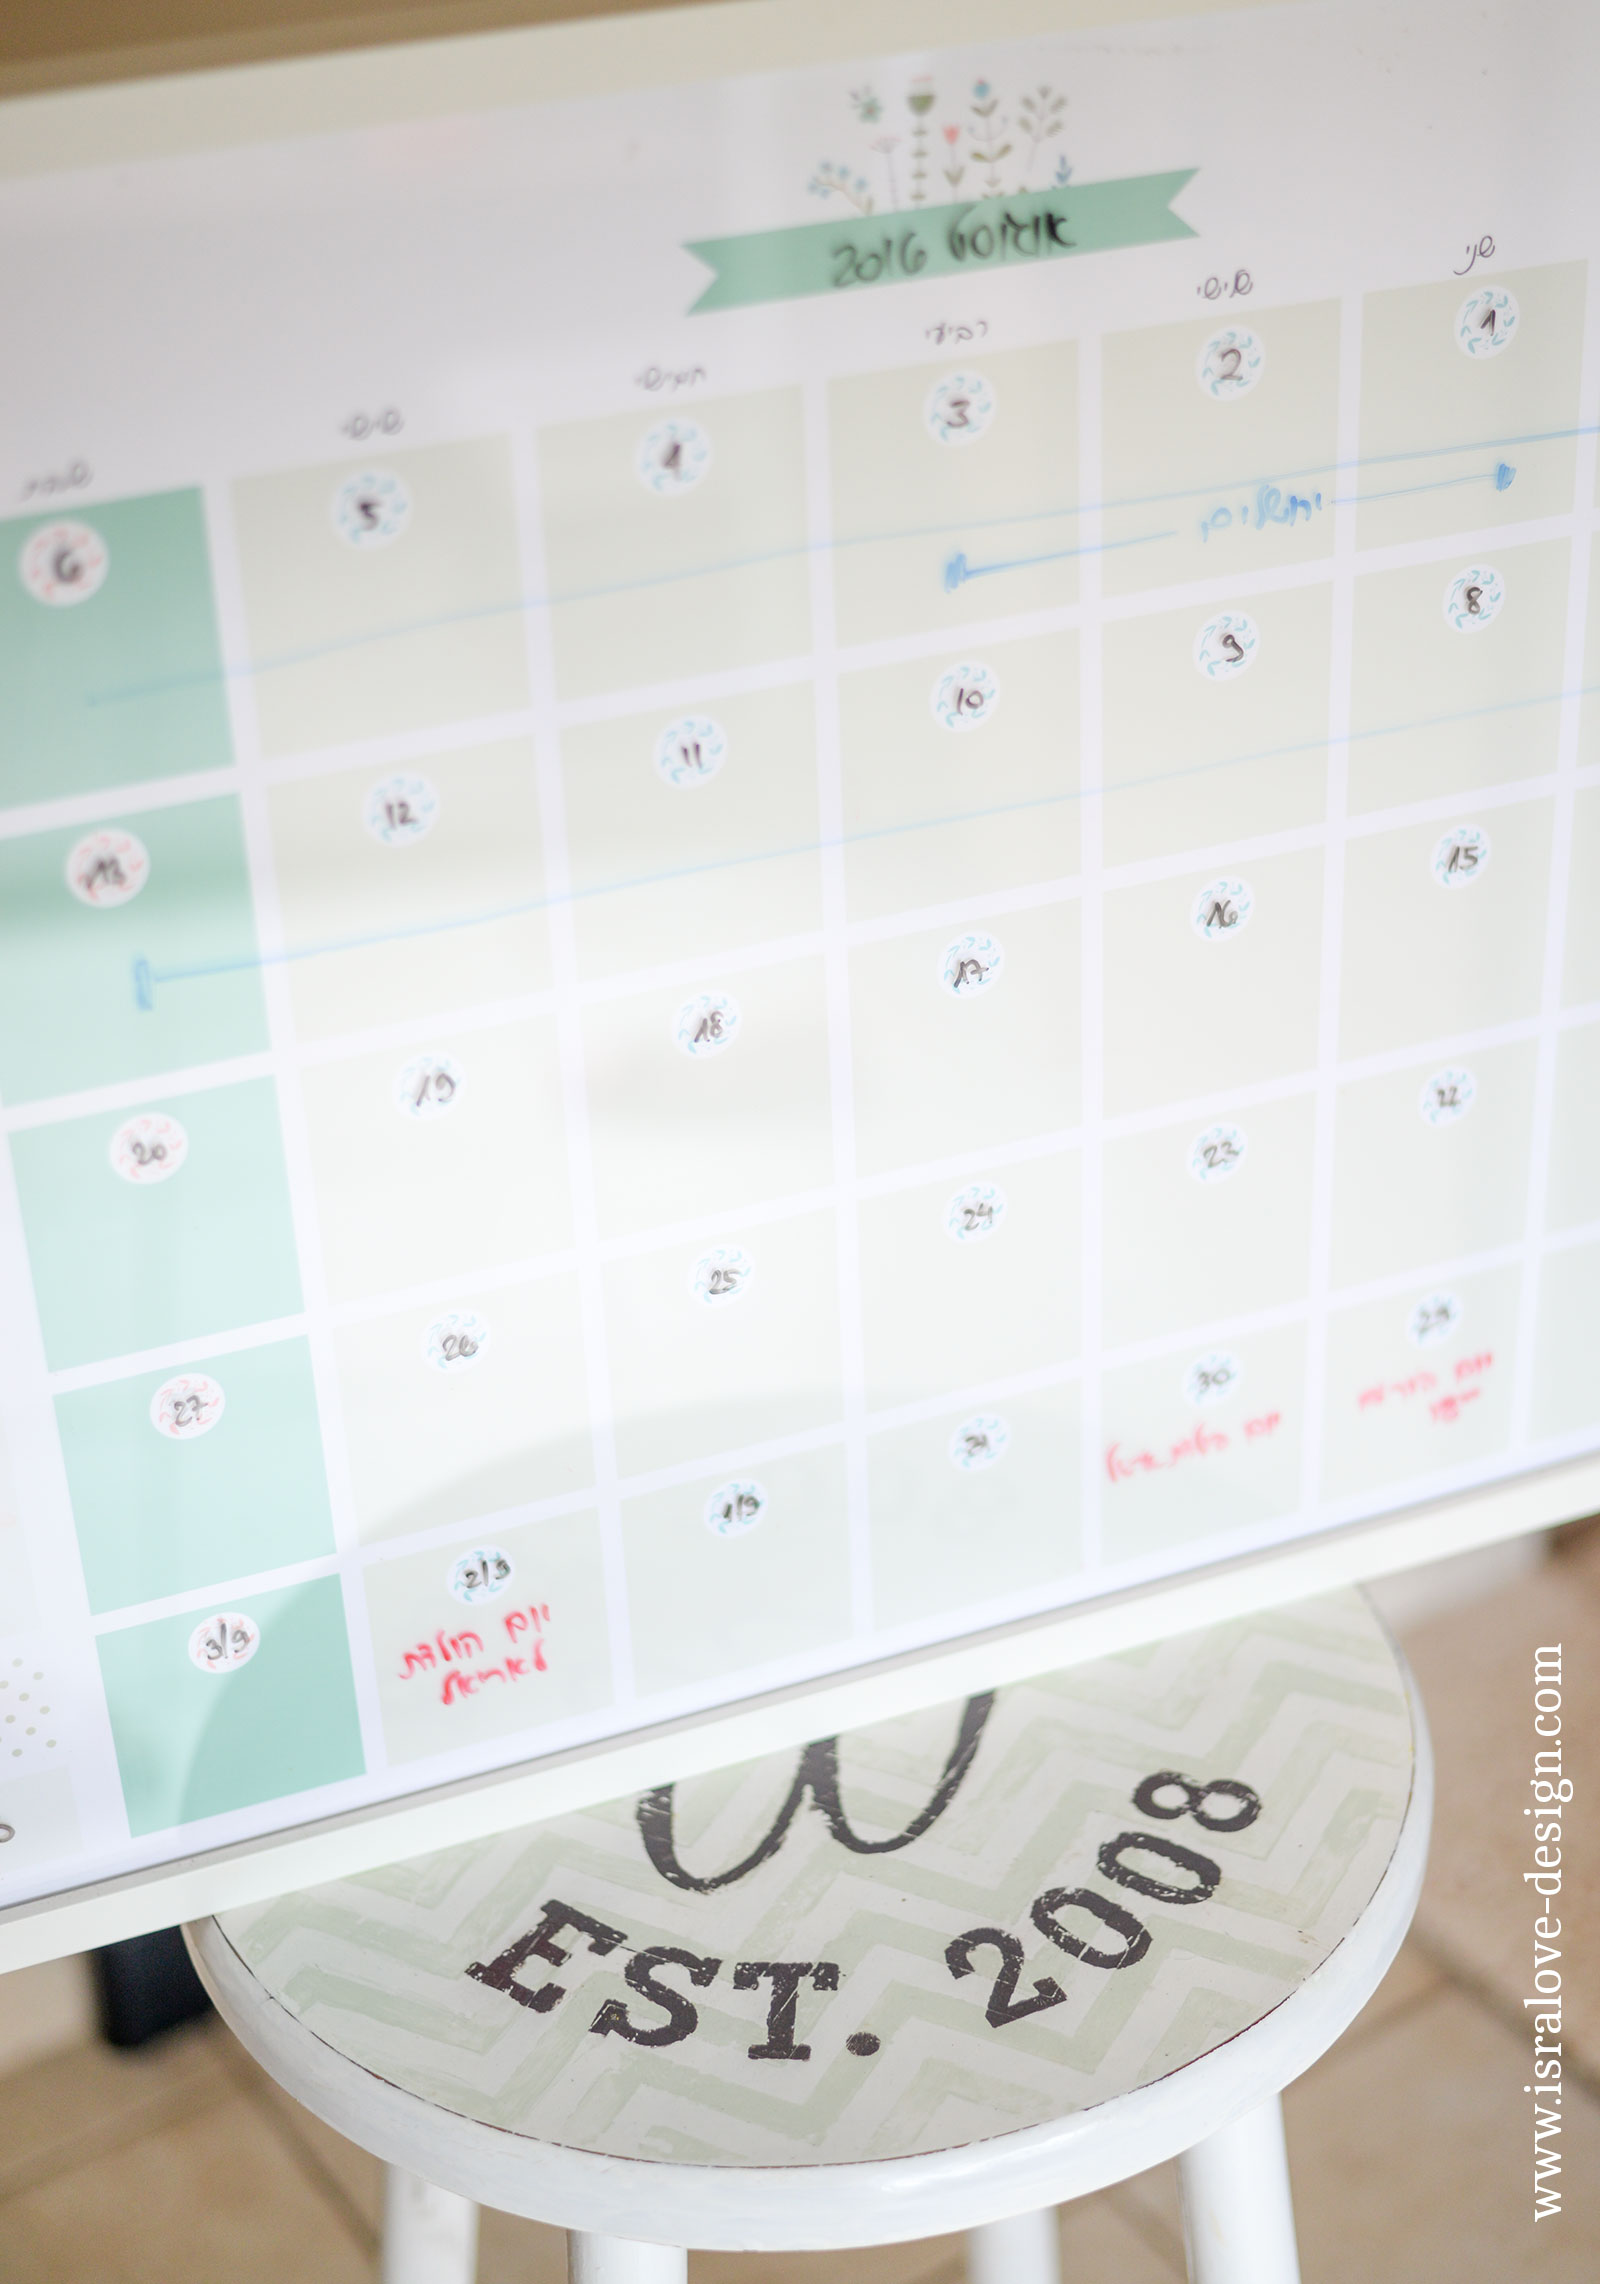 Free DIY Calendar, printable command center, dry erase board, Jewish calendar, printable by isralove